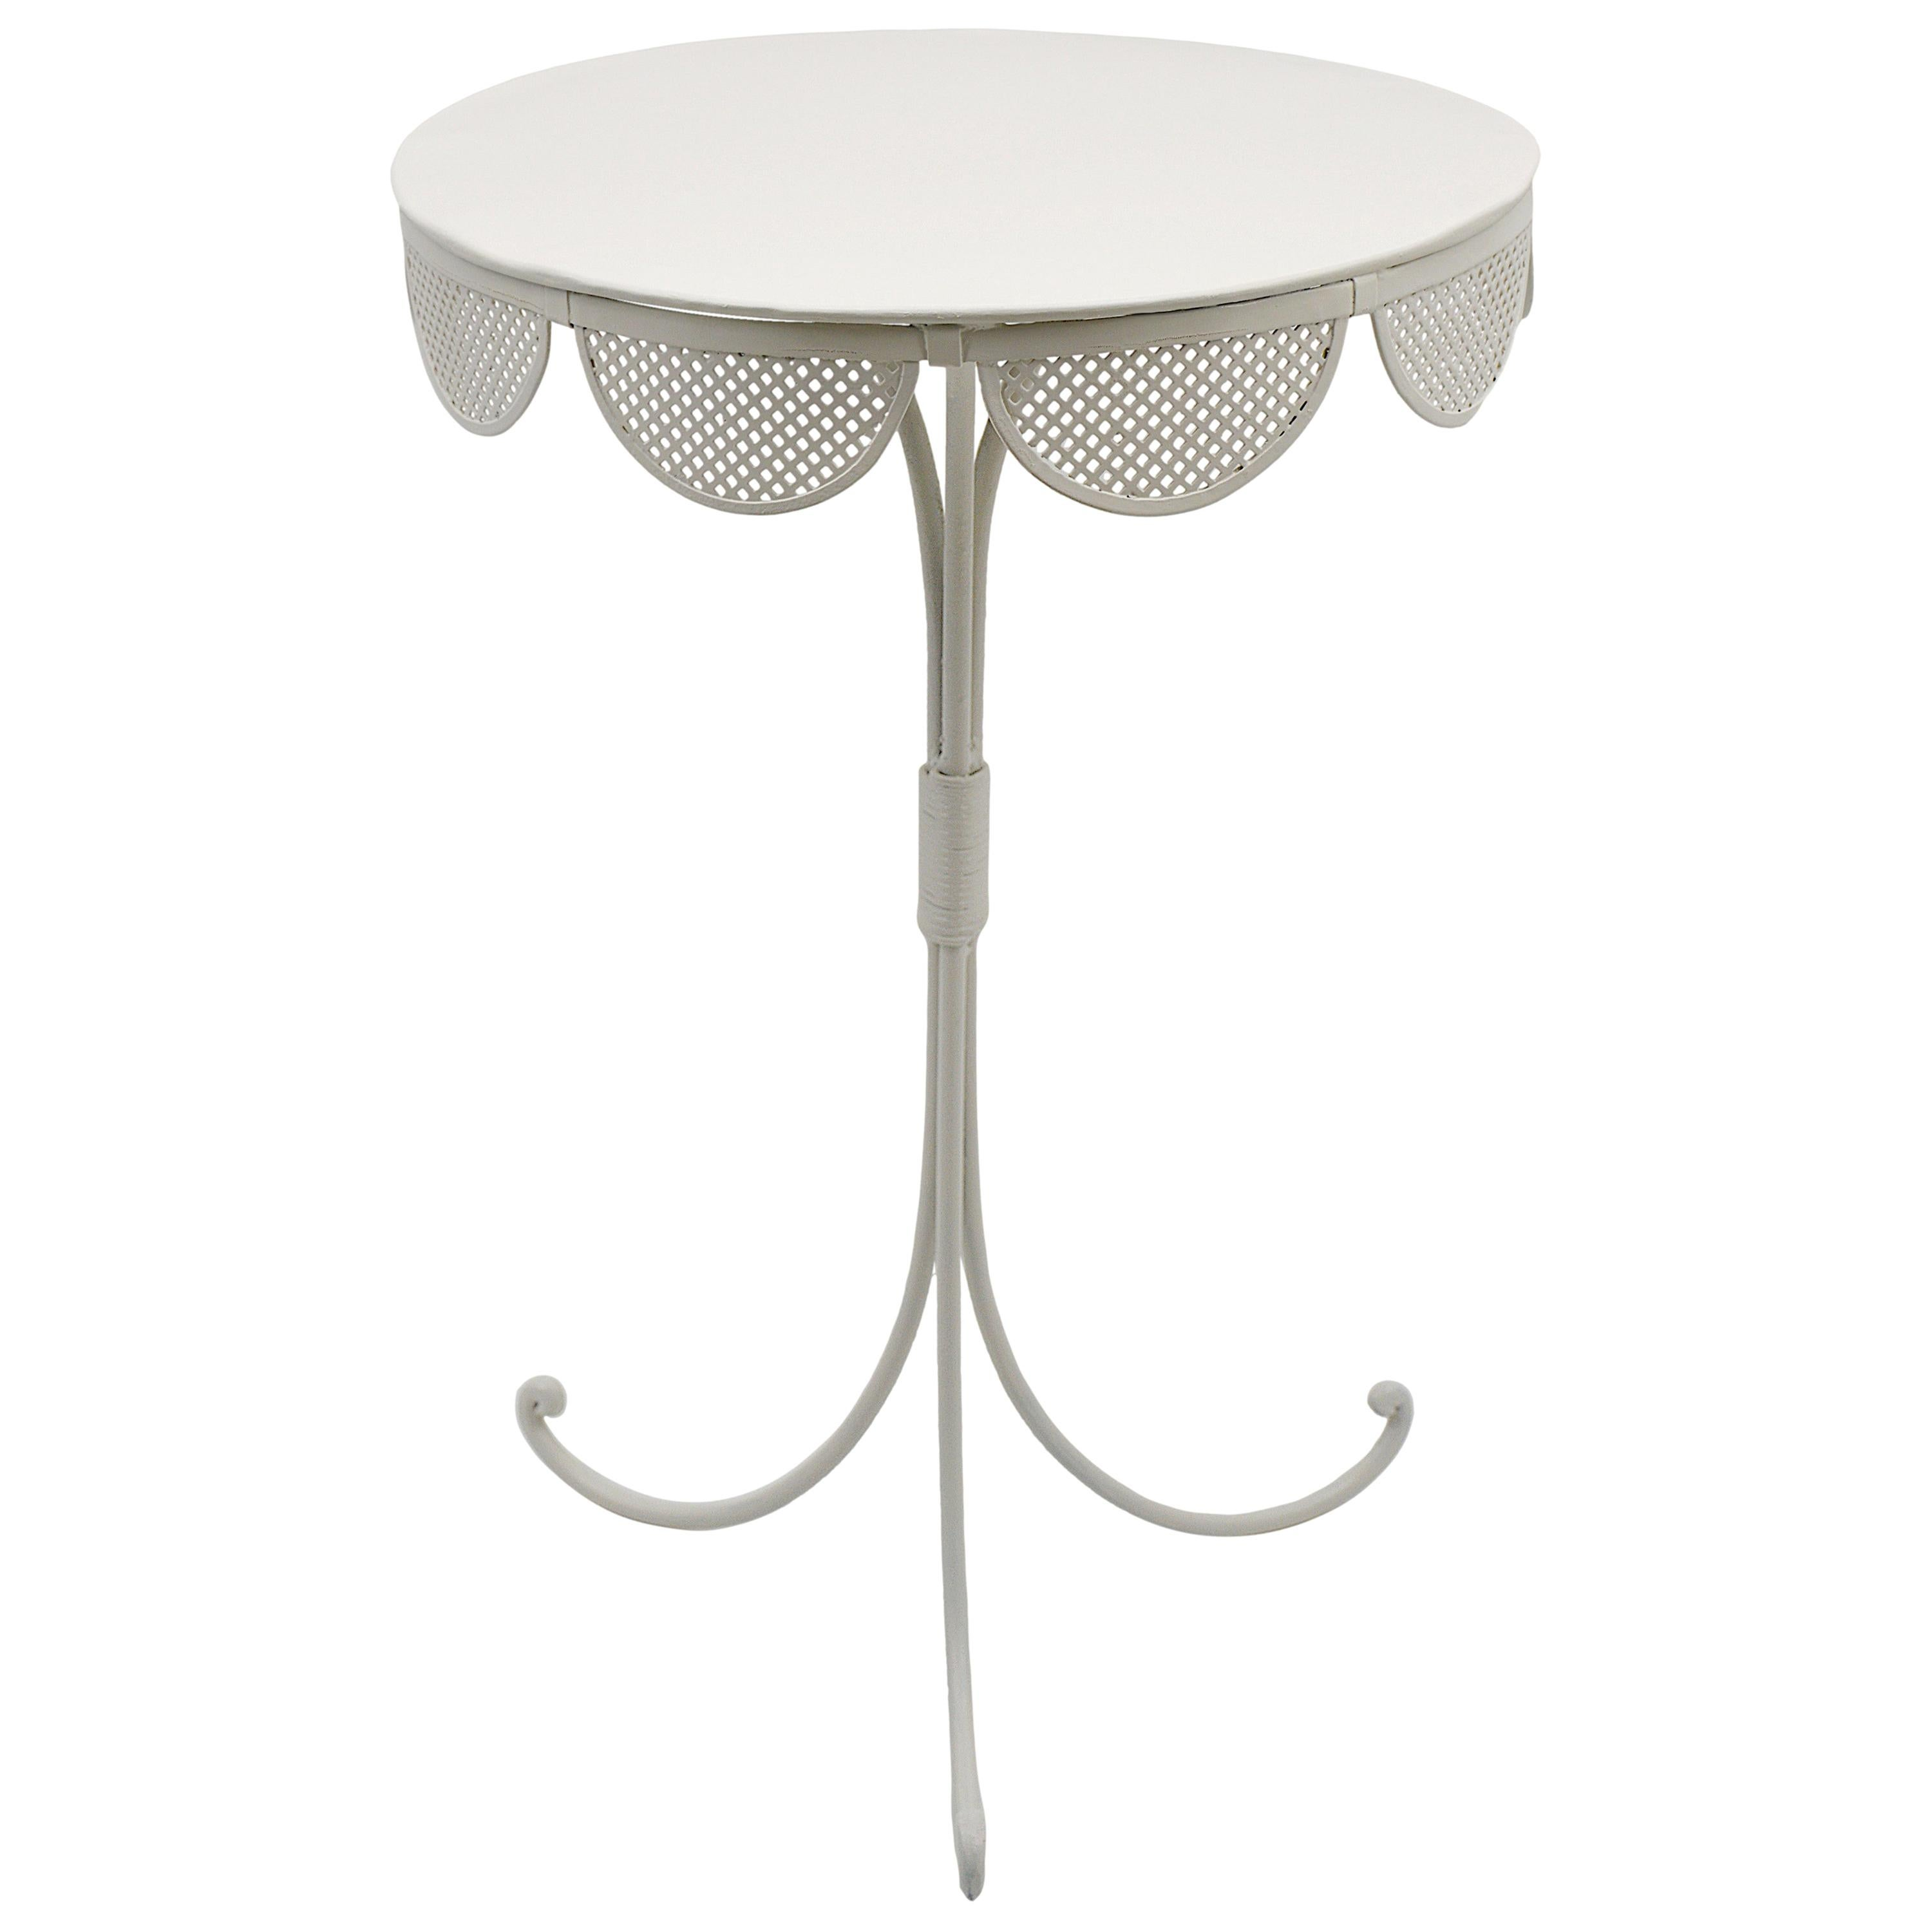 Mathieu Matégot French Midcentury Small Table, 1950s